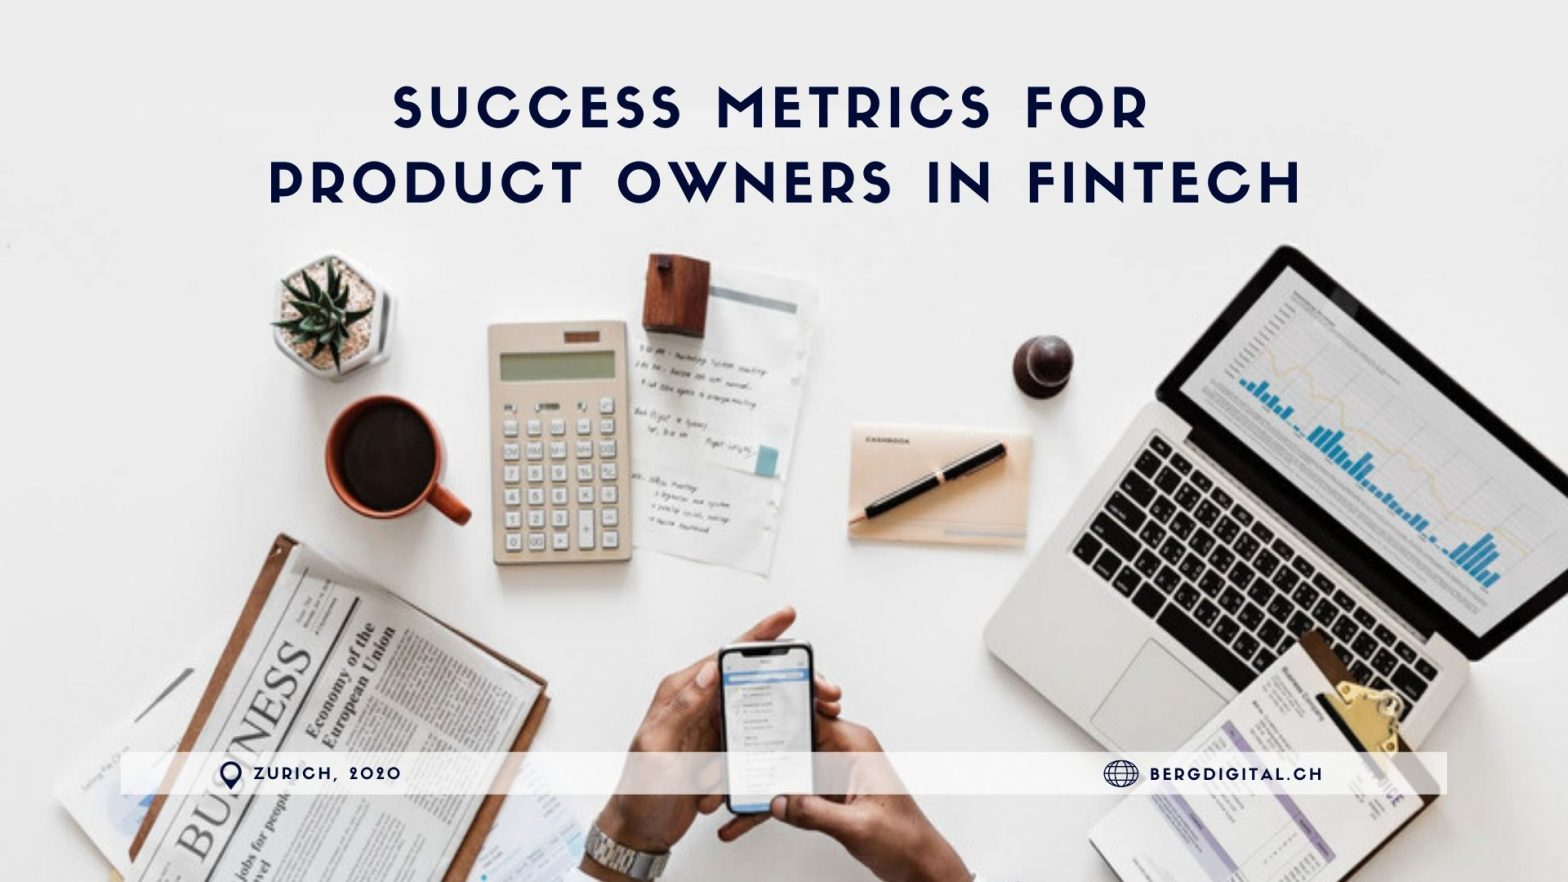 Success metrics for Product Owners in FinTech by BergDigital.ch